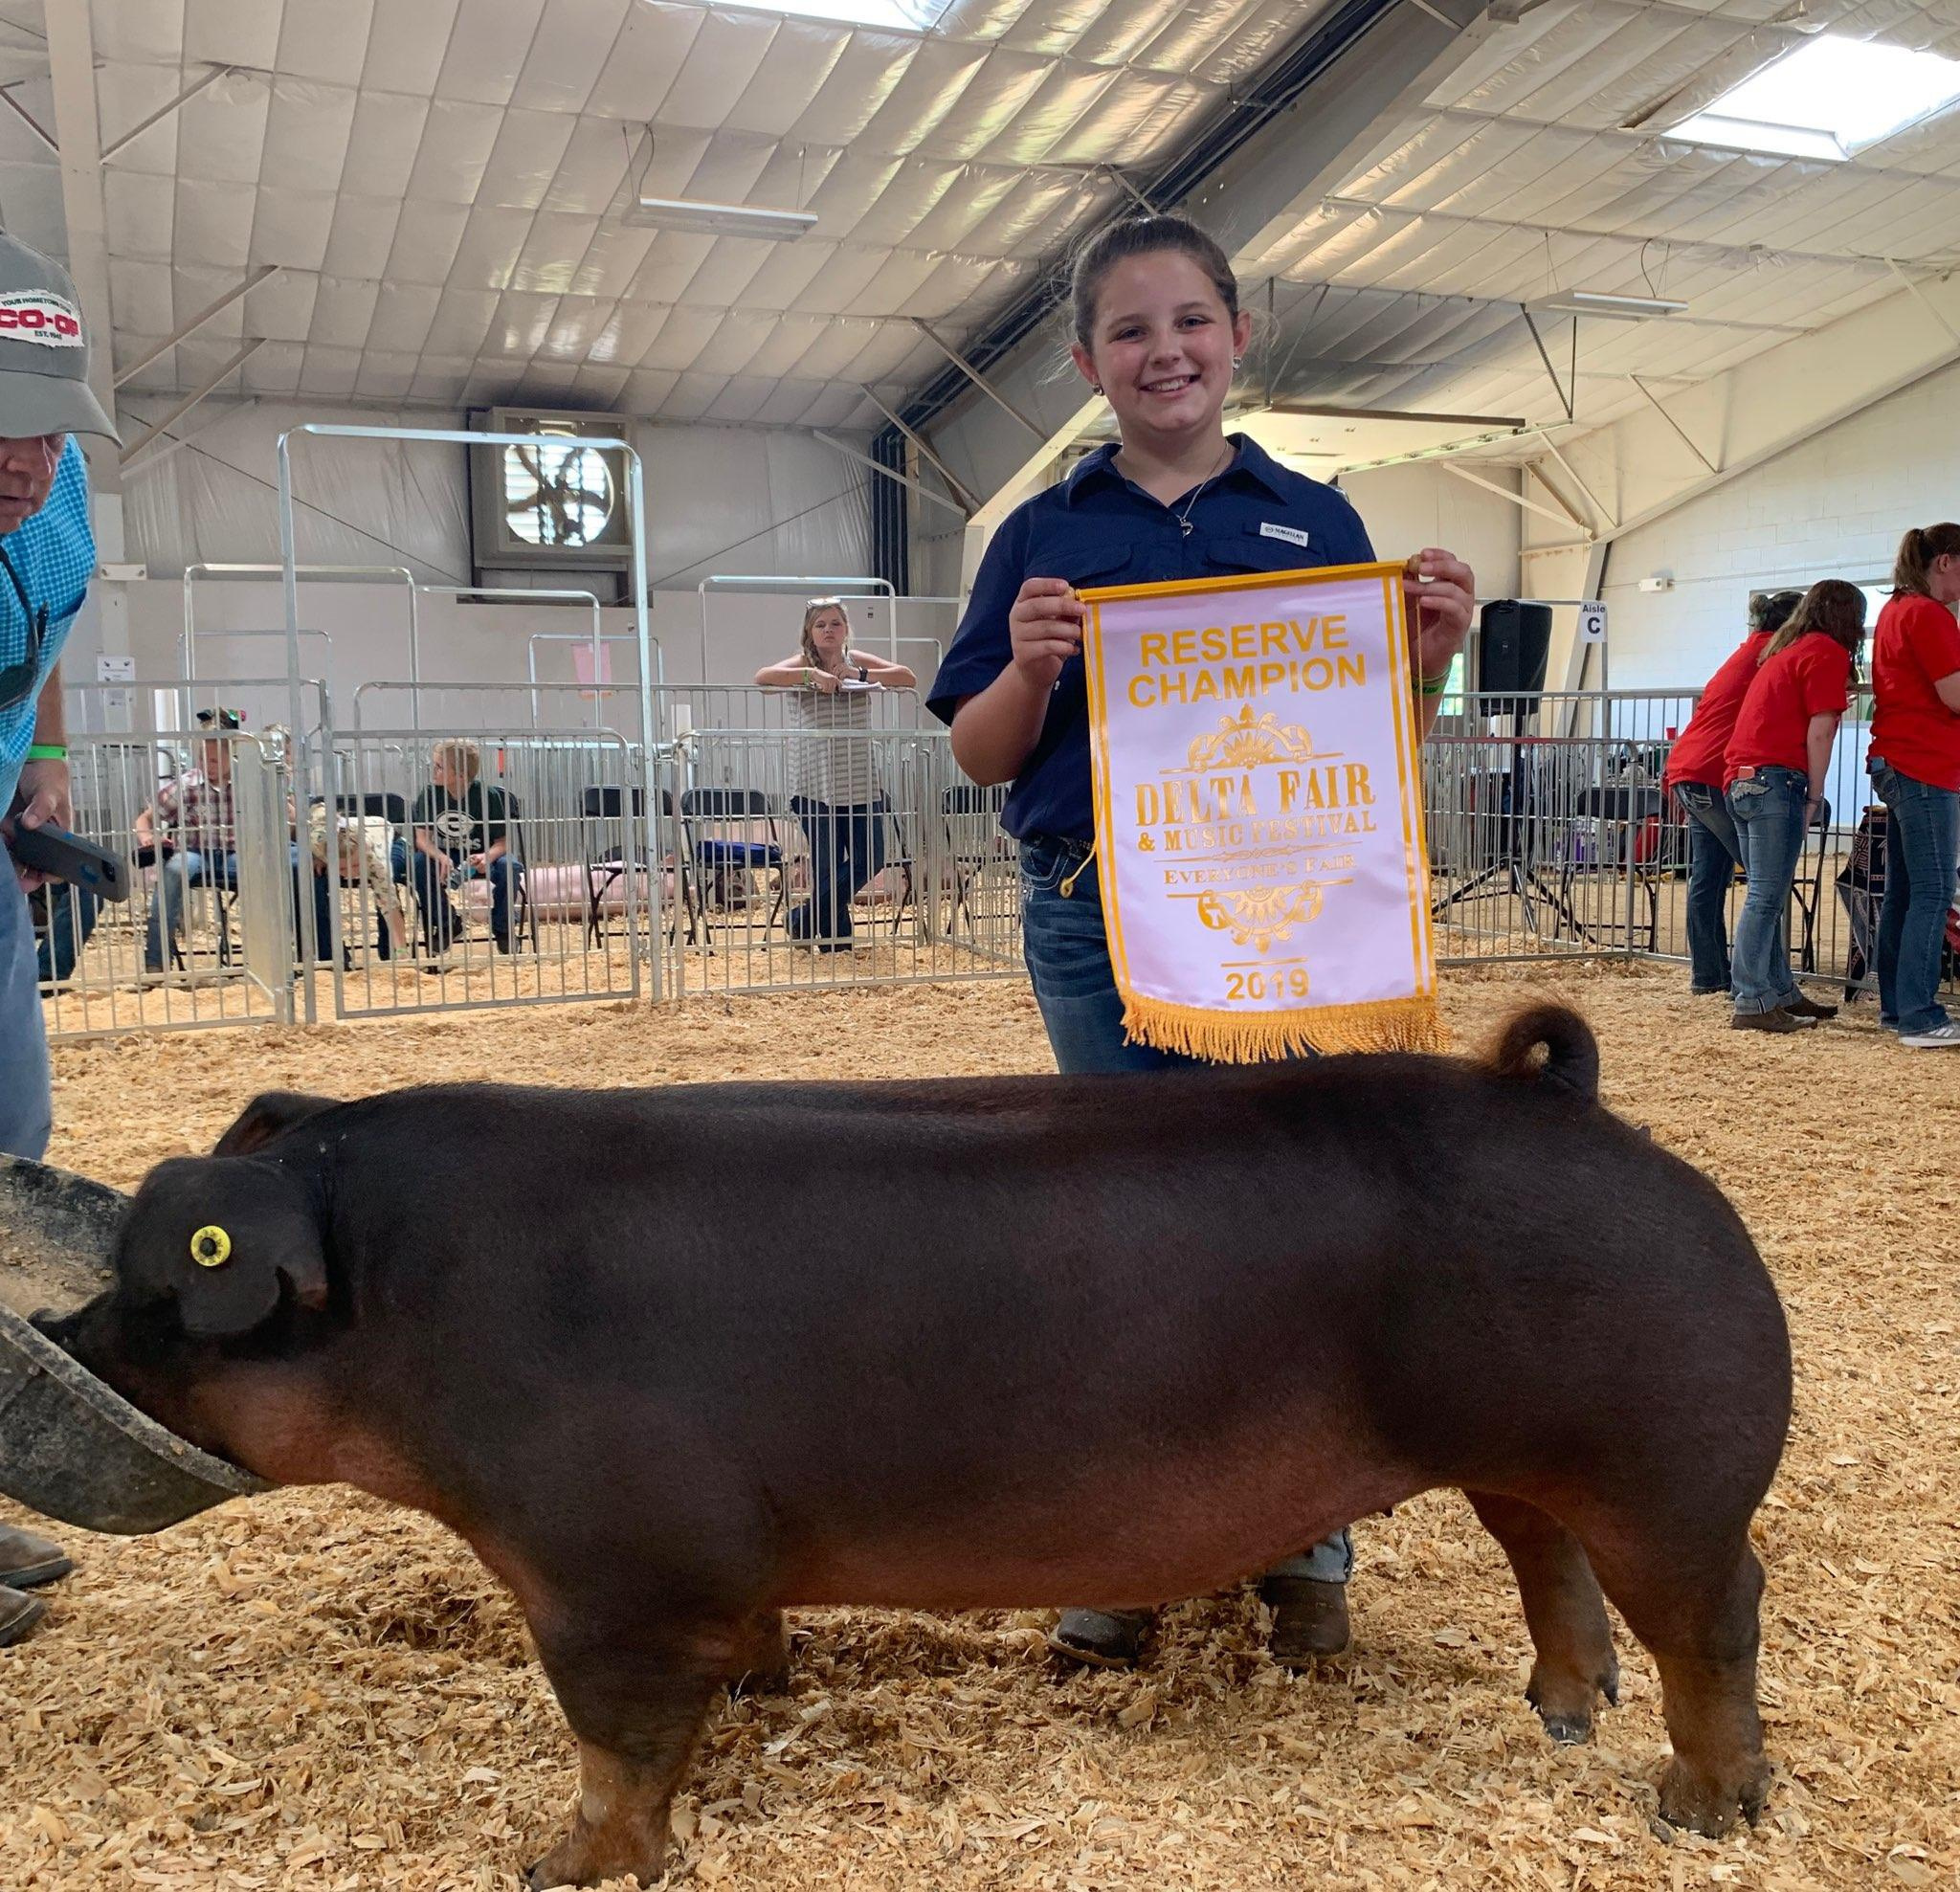 Ann Thomas Lowery 2019 Delta Fair & Music Festival Reserve Champion Duroc Gilt (Day 2)